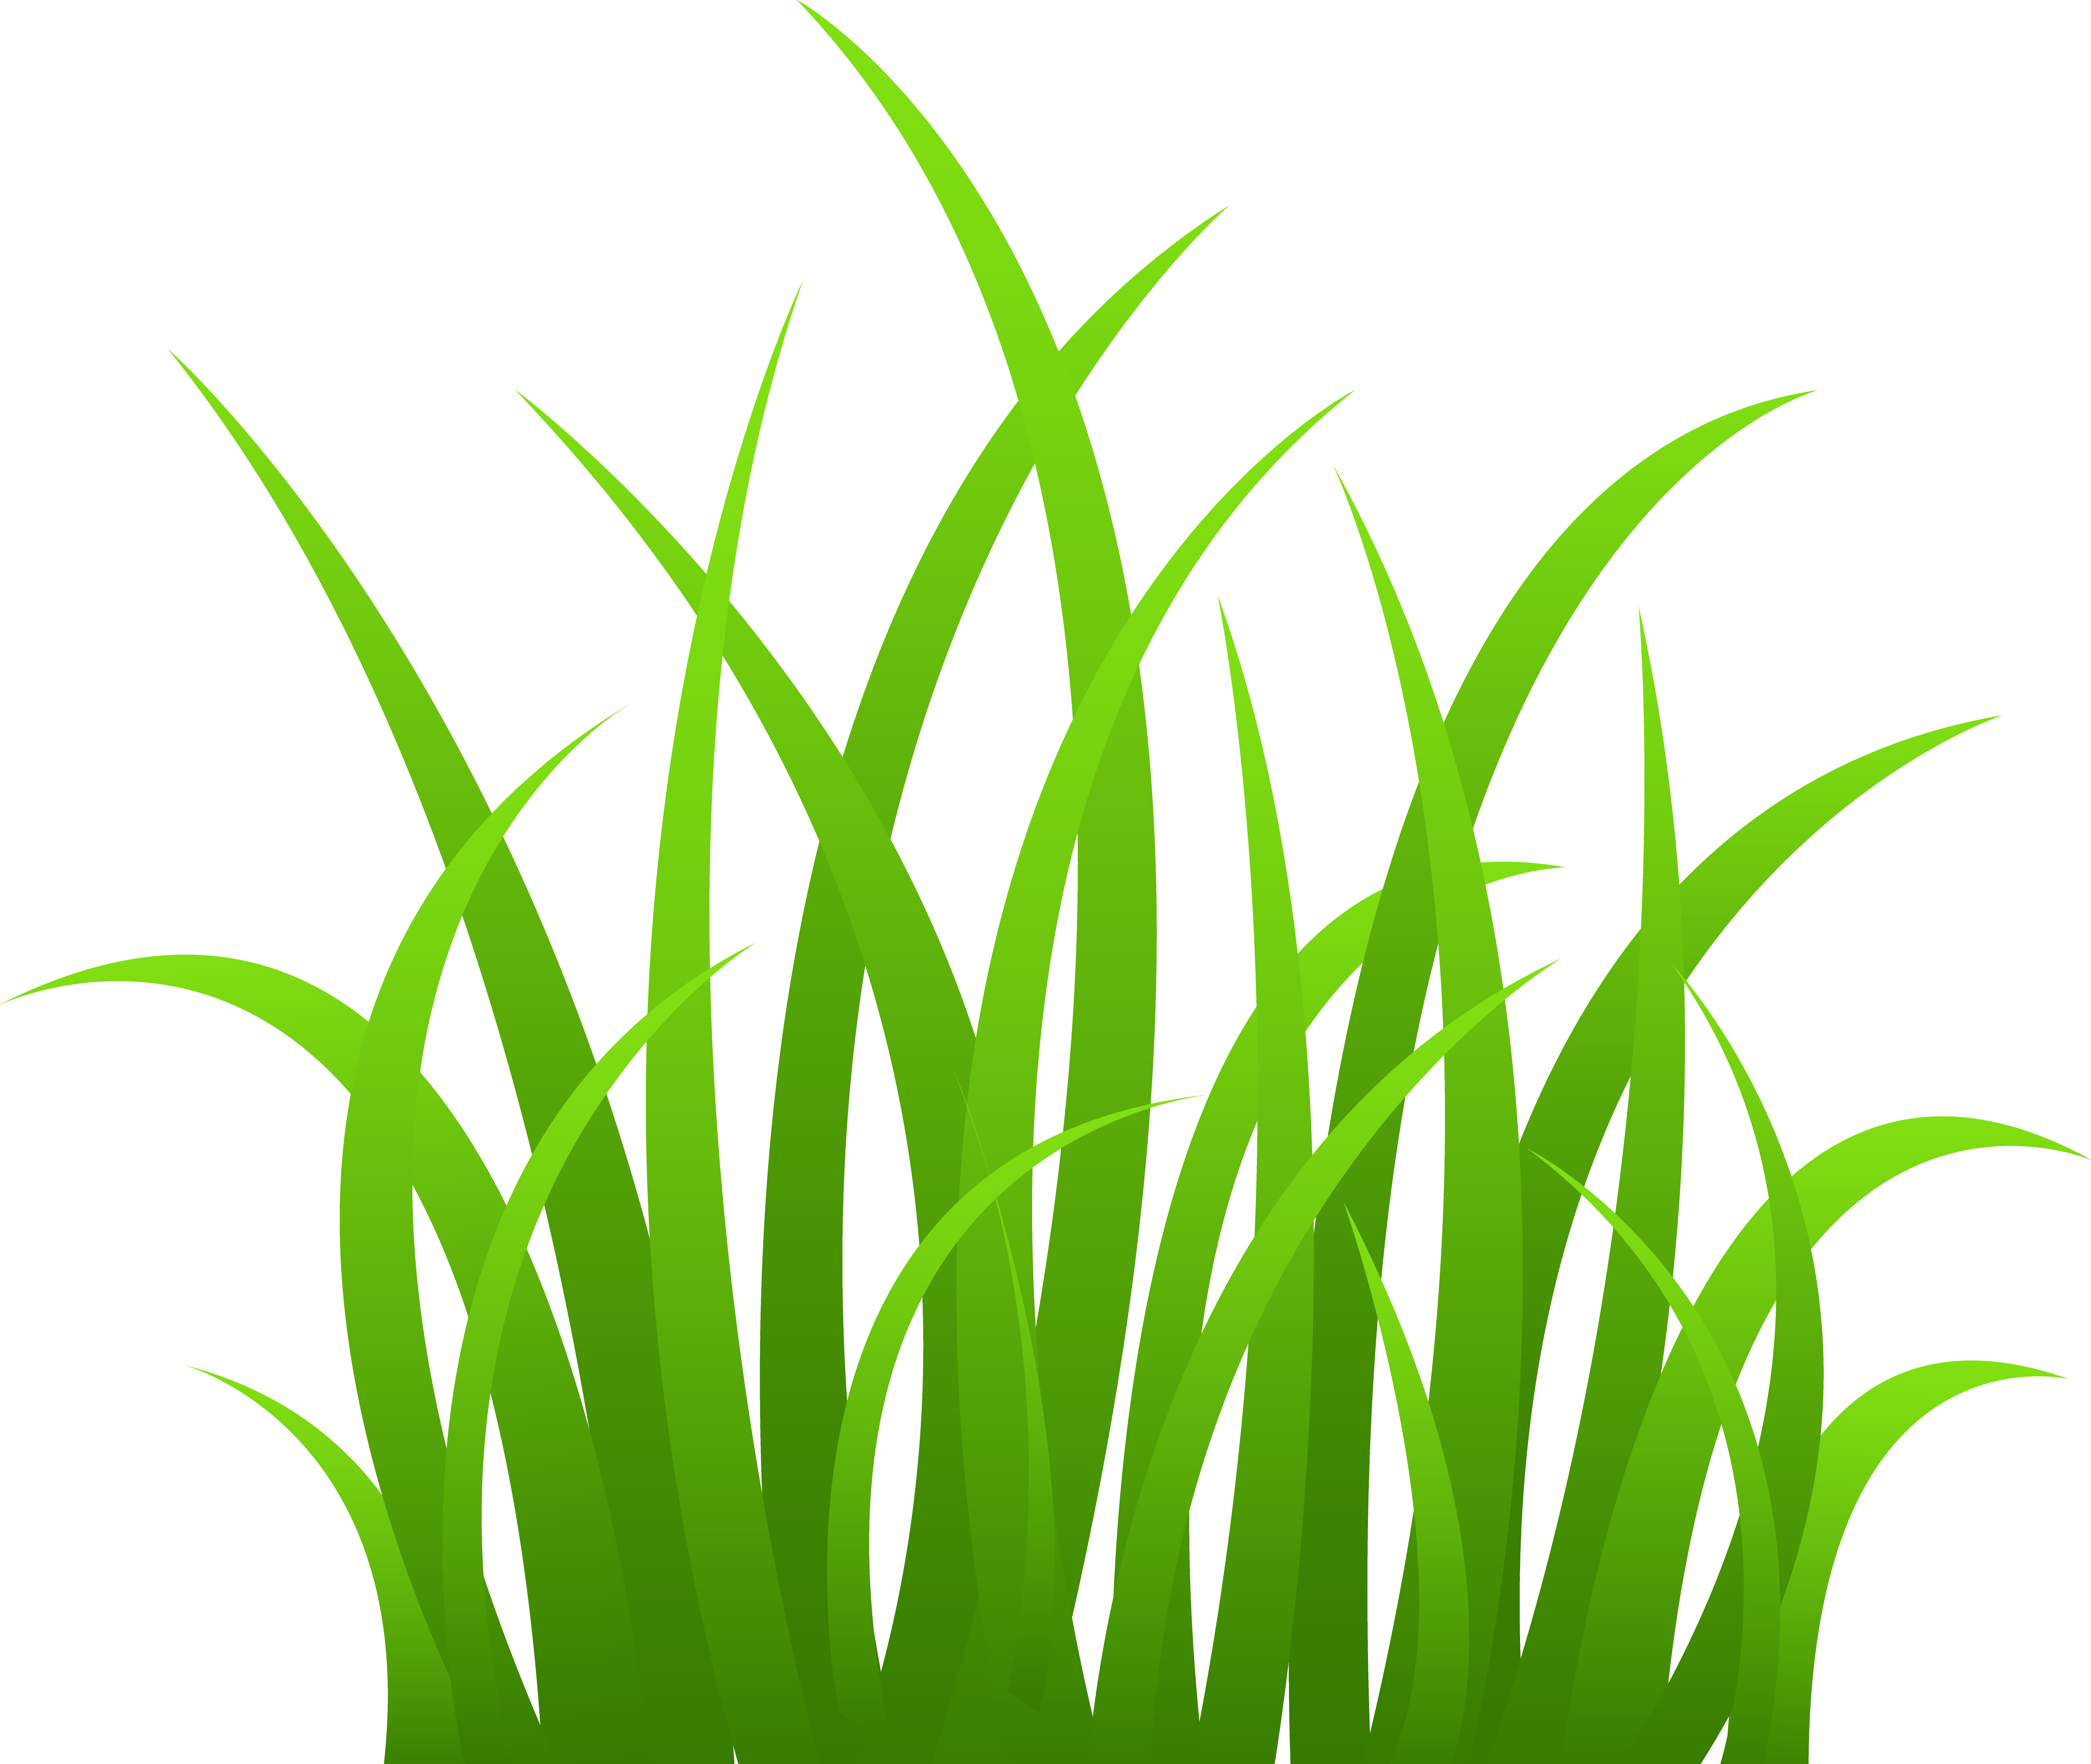 Clip art google search. Grass border png